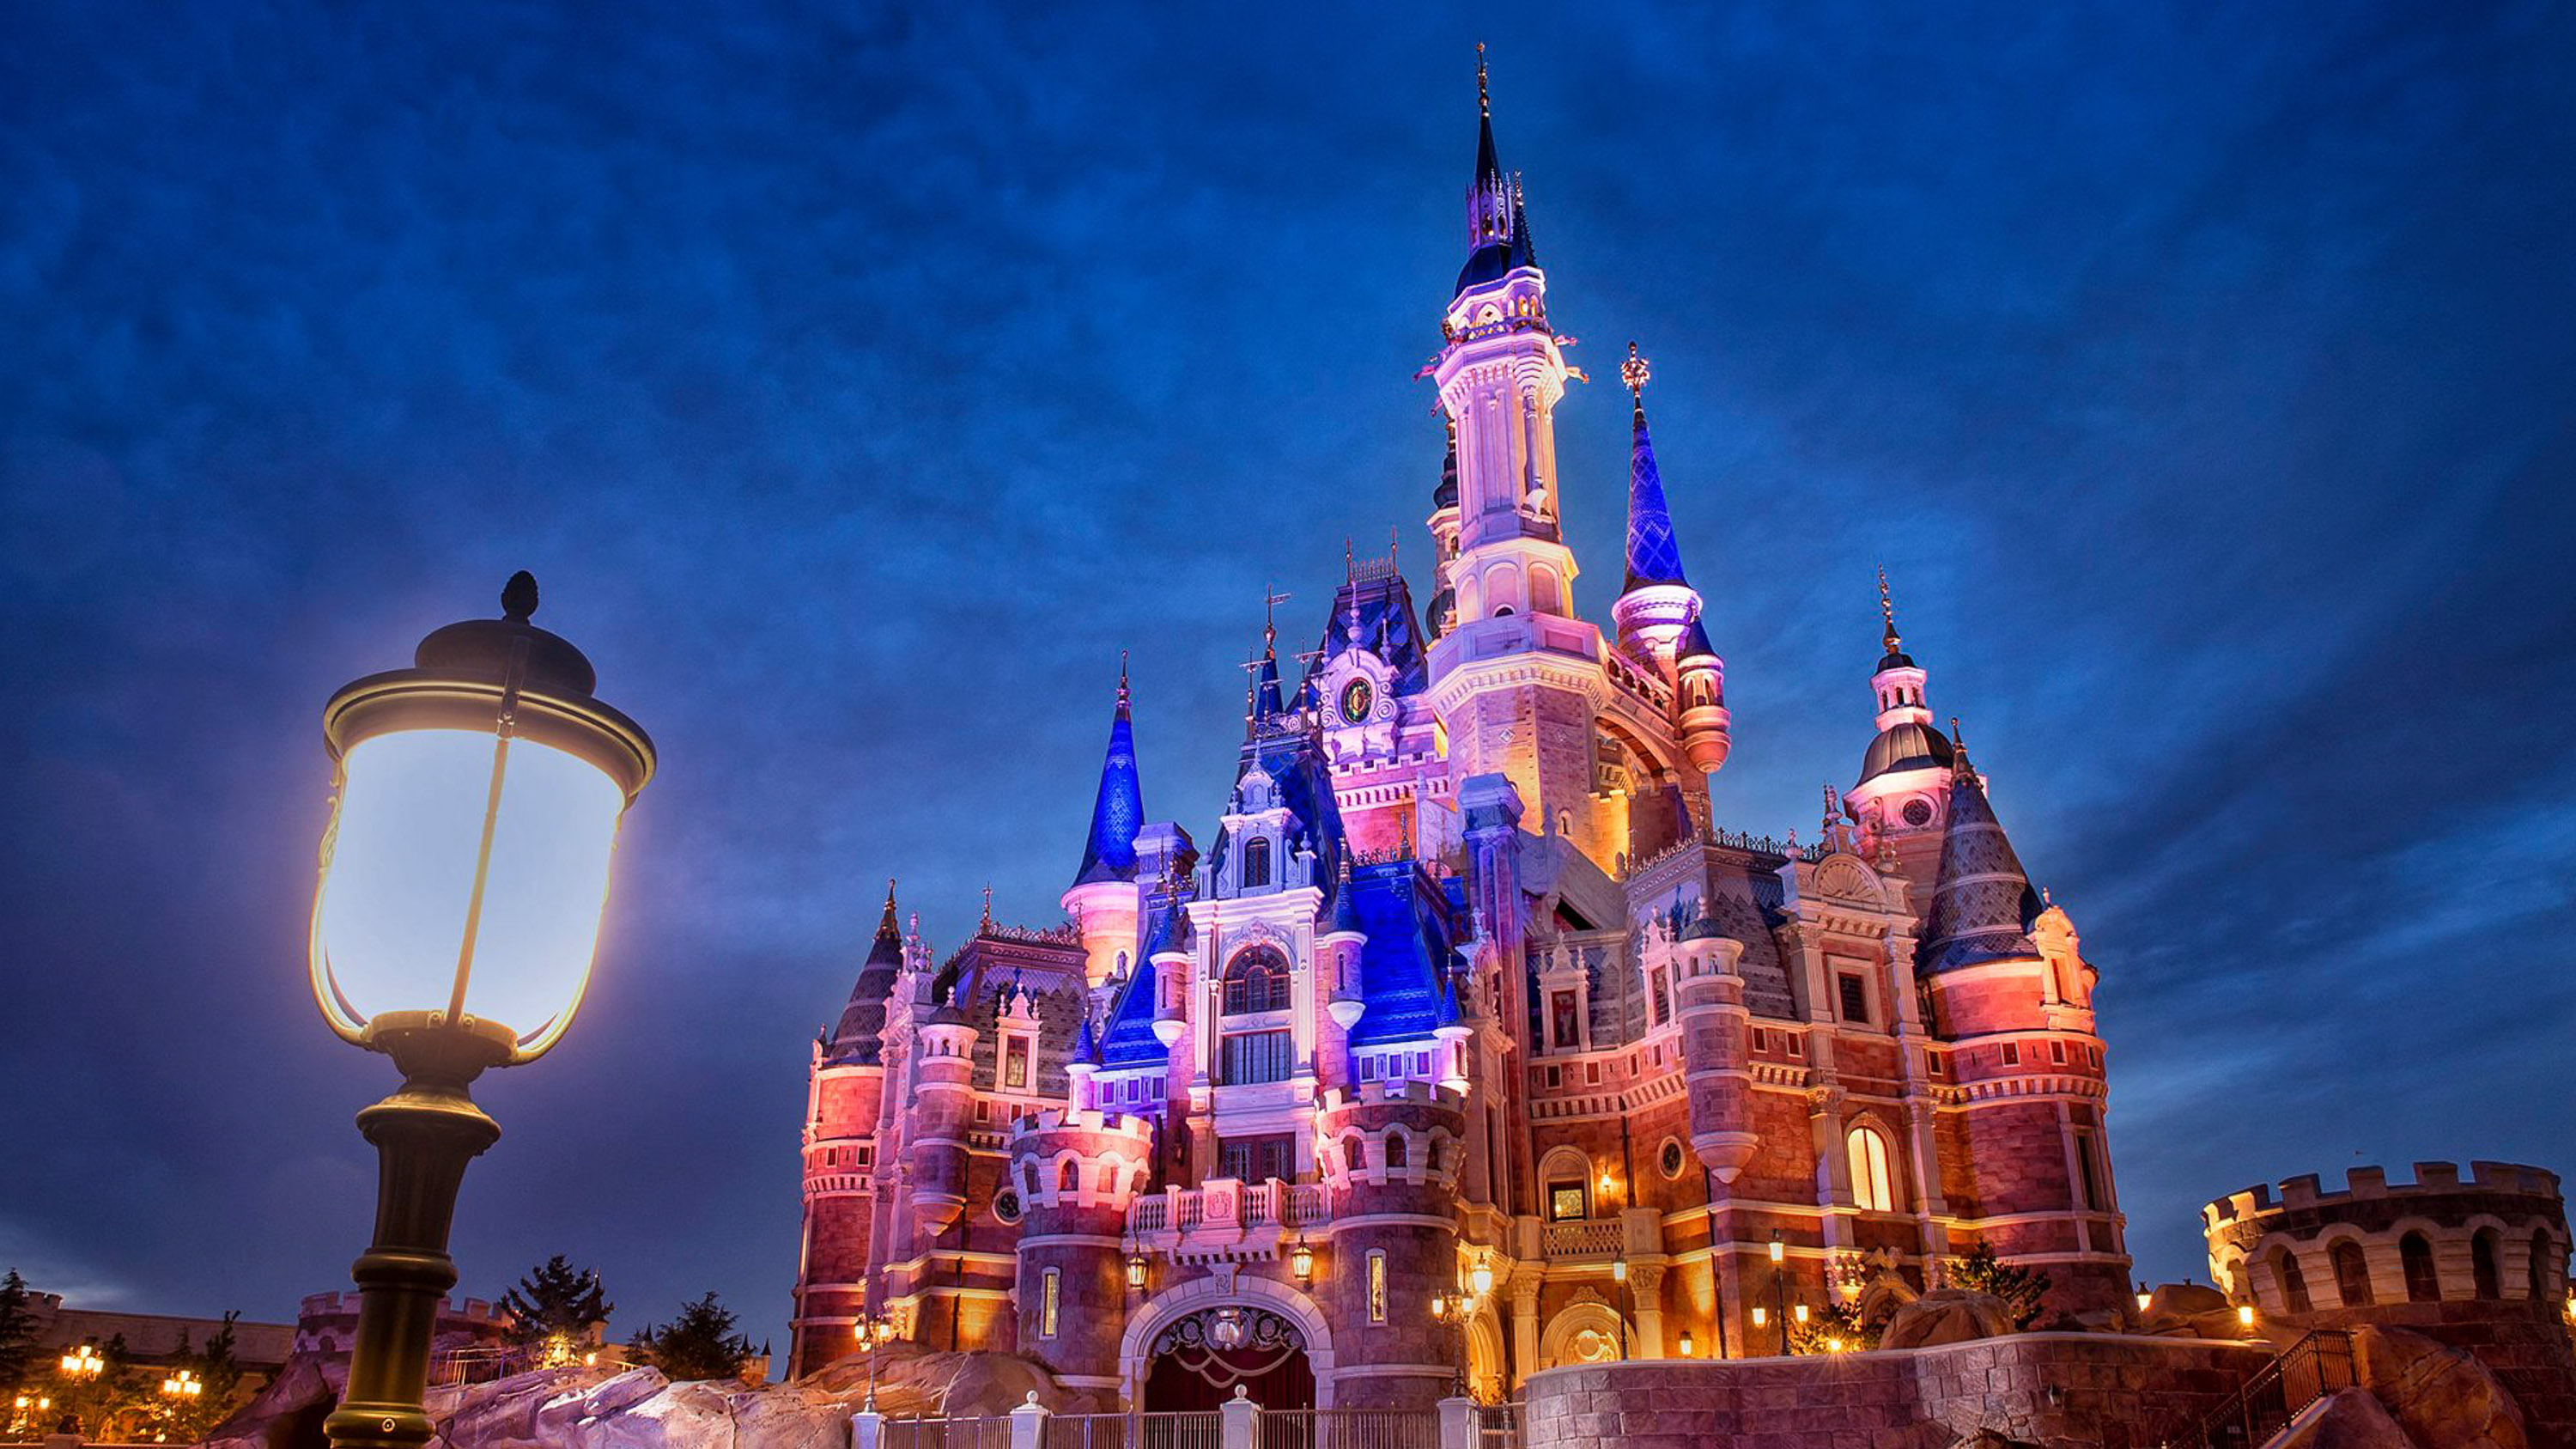 IN PHOTOS: 5 things to know about new Shanghai Disneyland